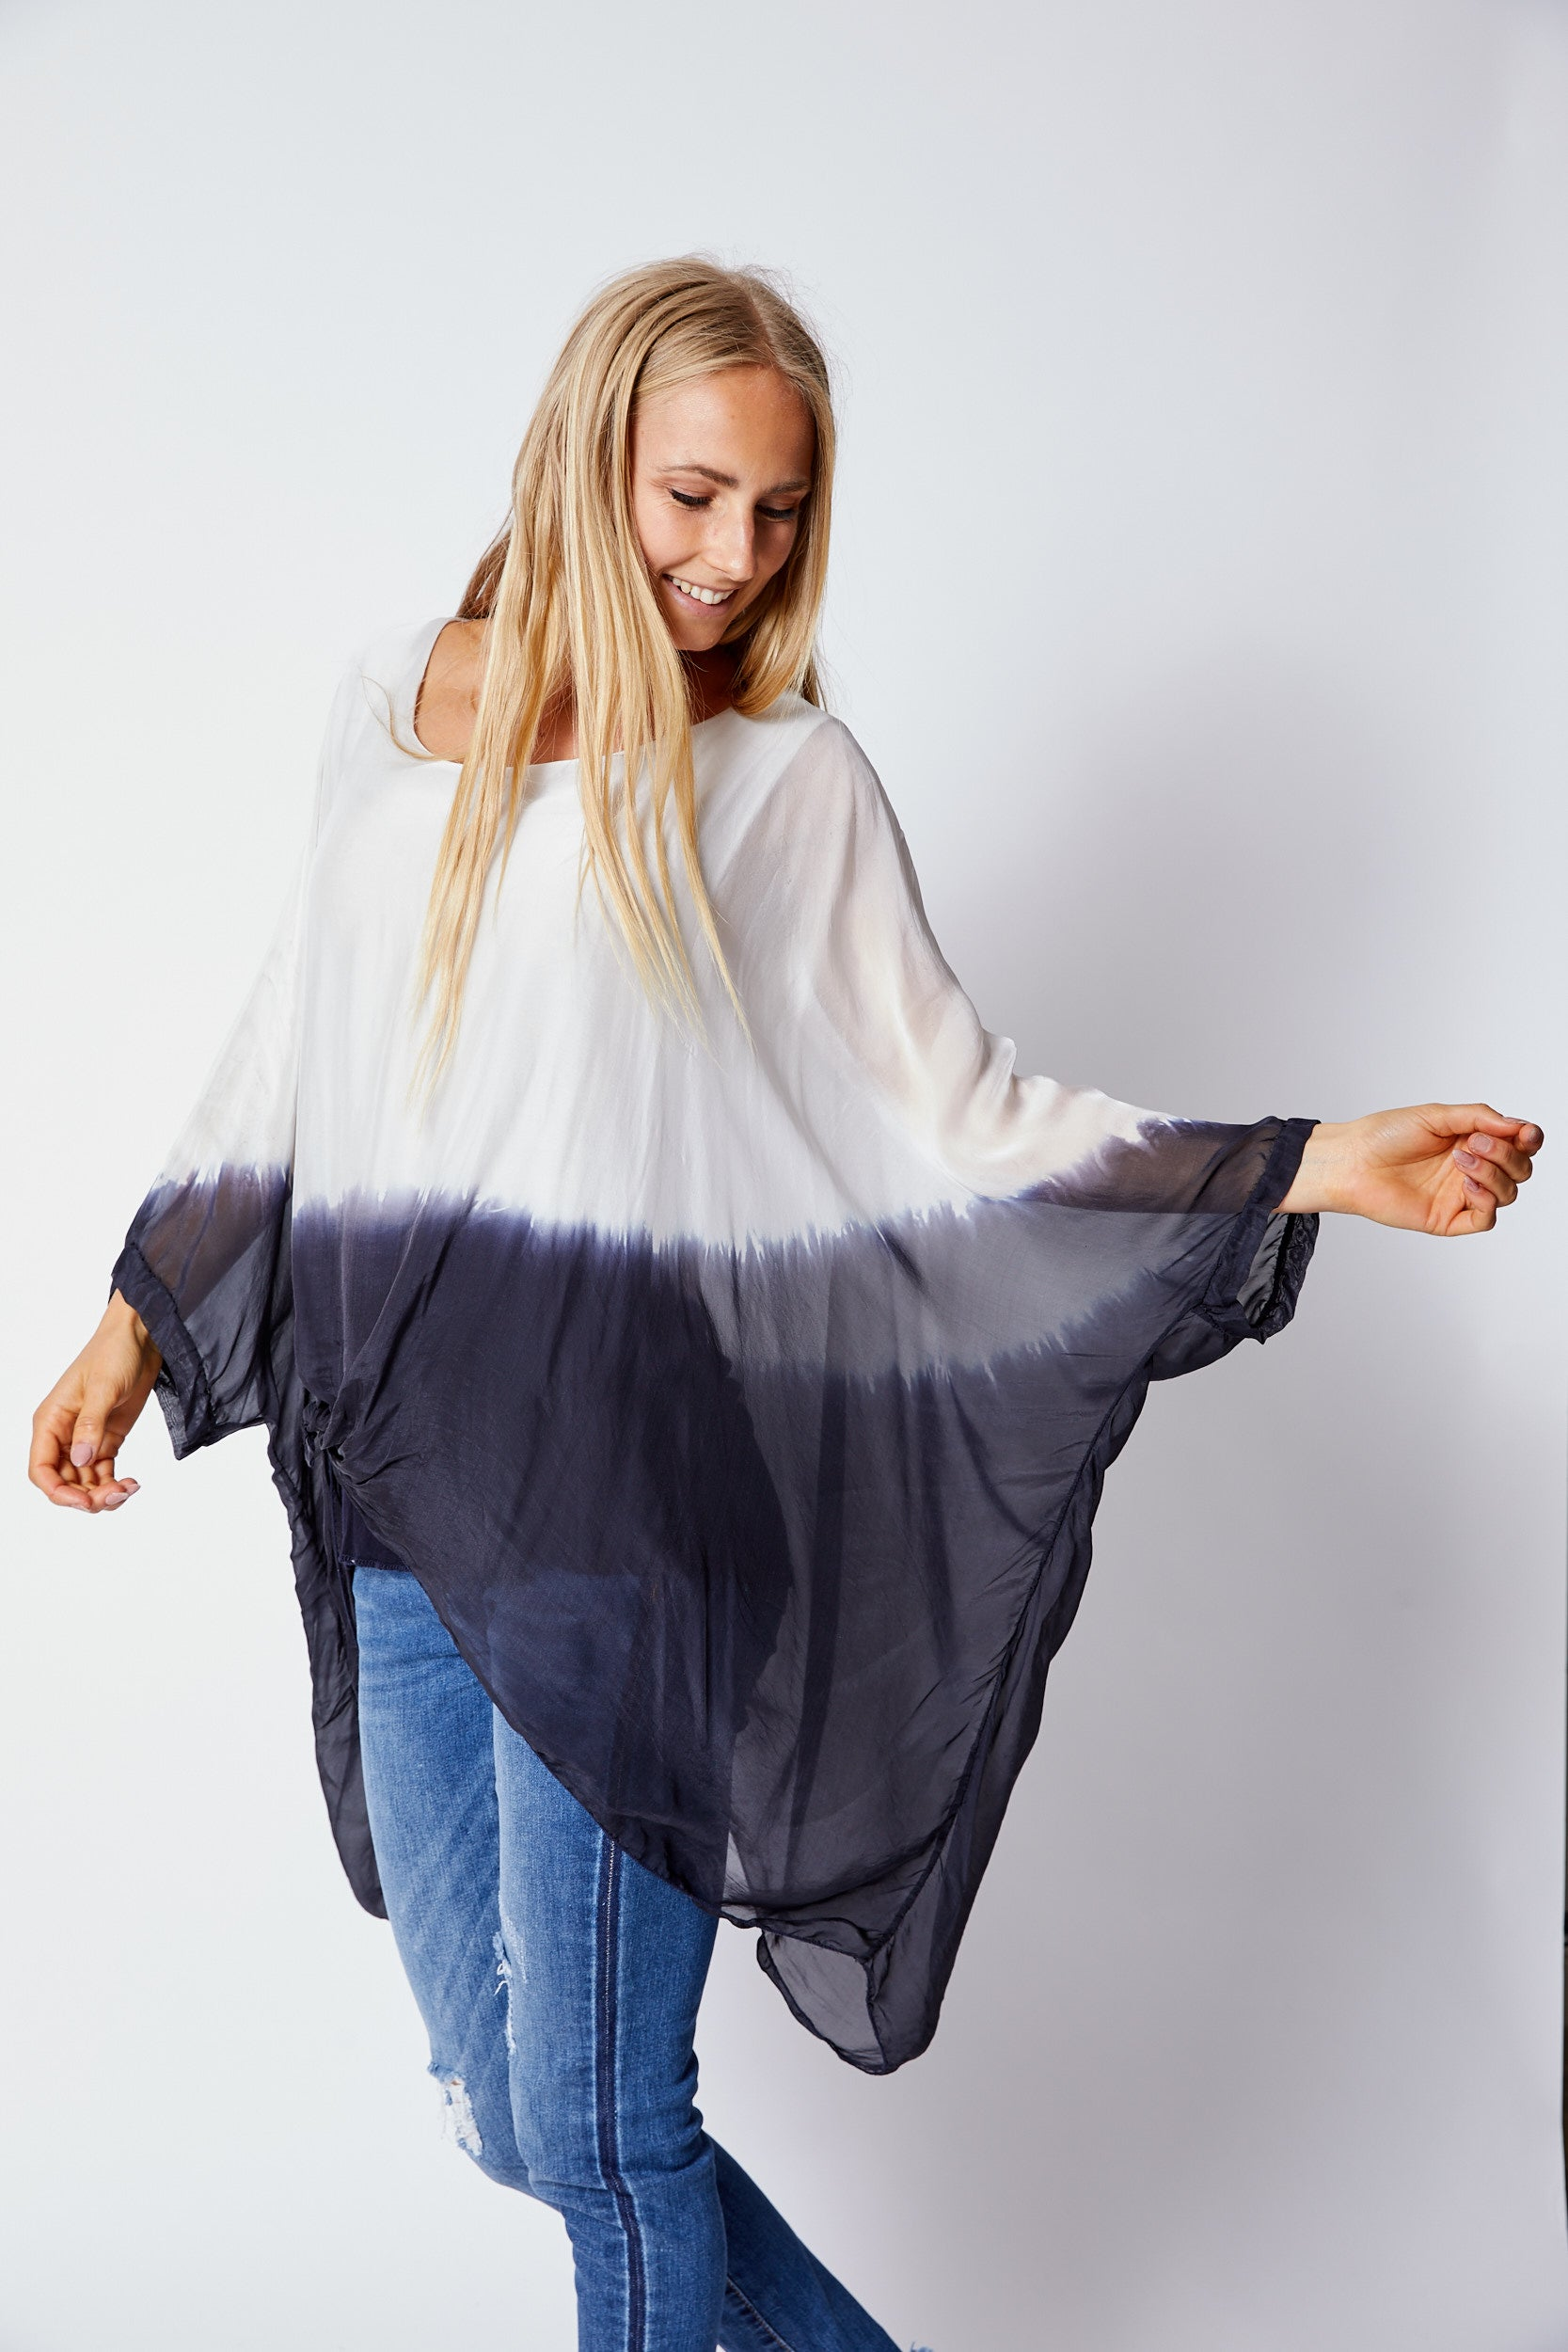 Italian Silk Dip Dye Top - Jacqueline B Clothing